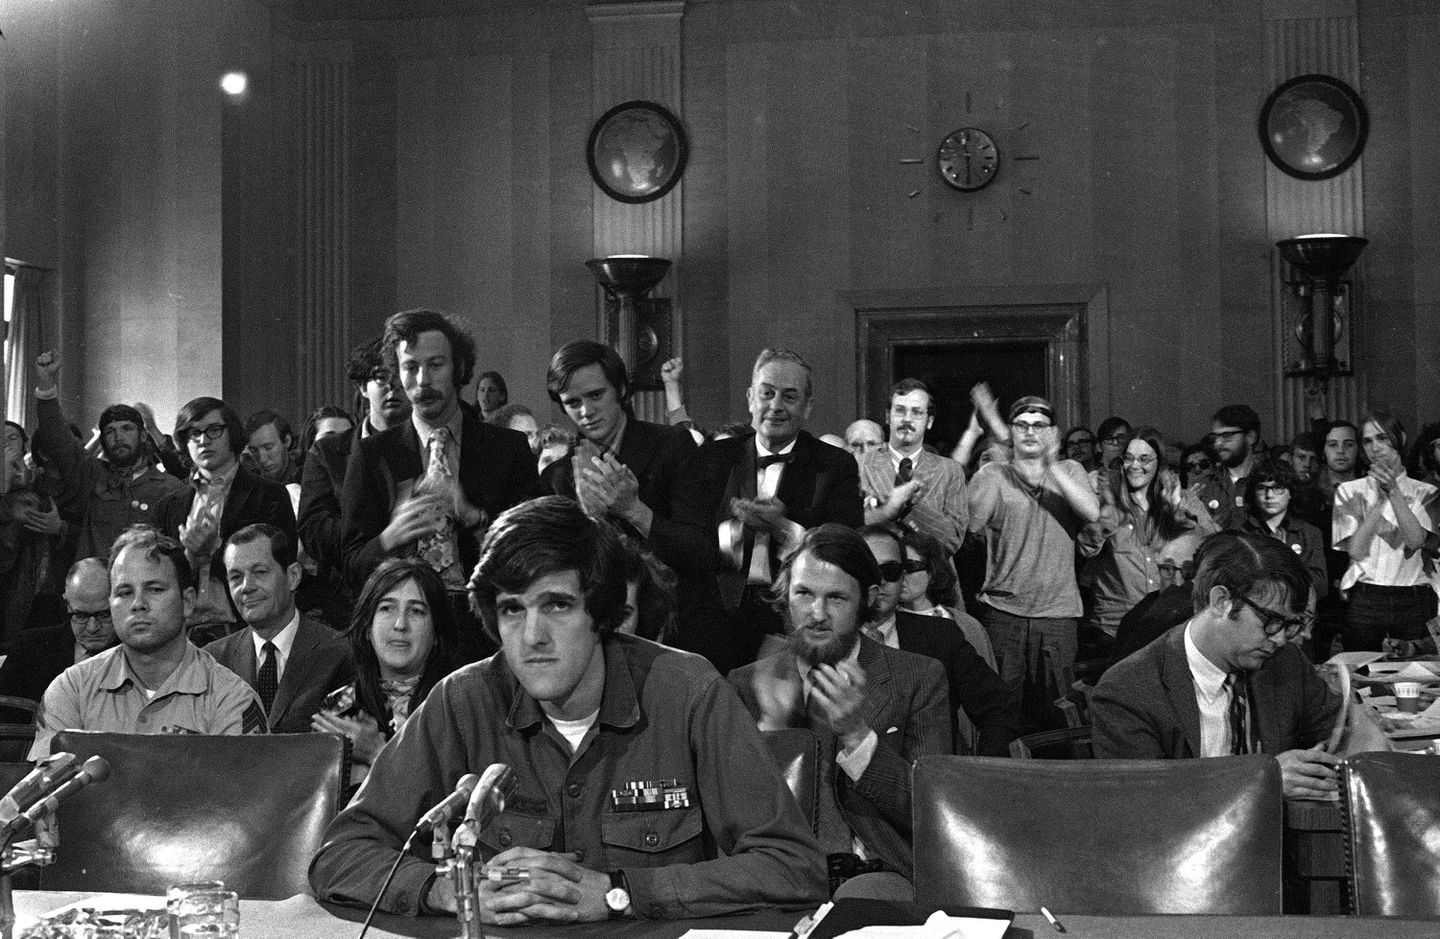 John Kerry, 27, testified about the war in Vietnam before the Senate Foreign Relations Committee in on April 22, 1971.